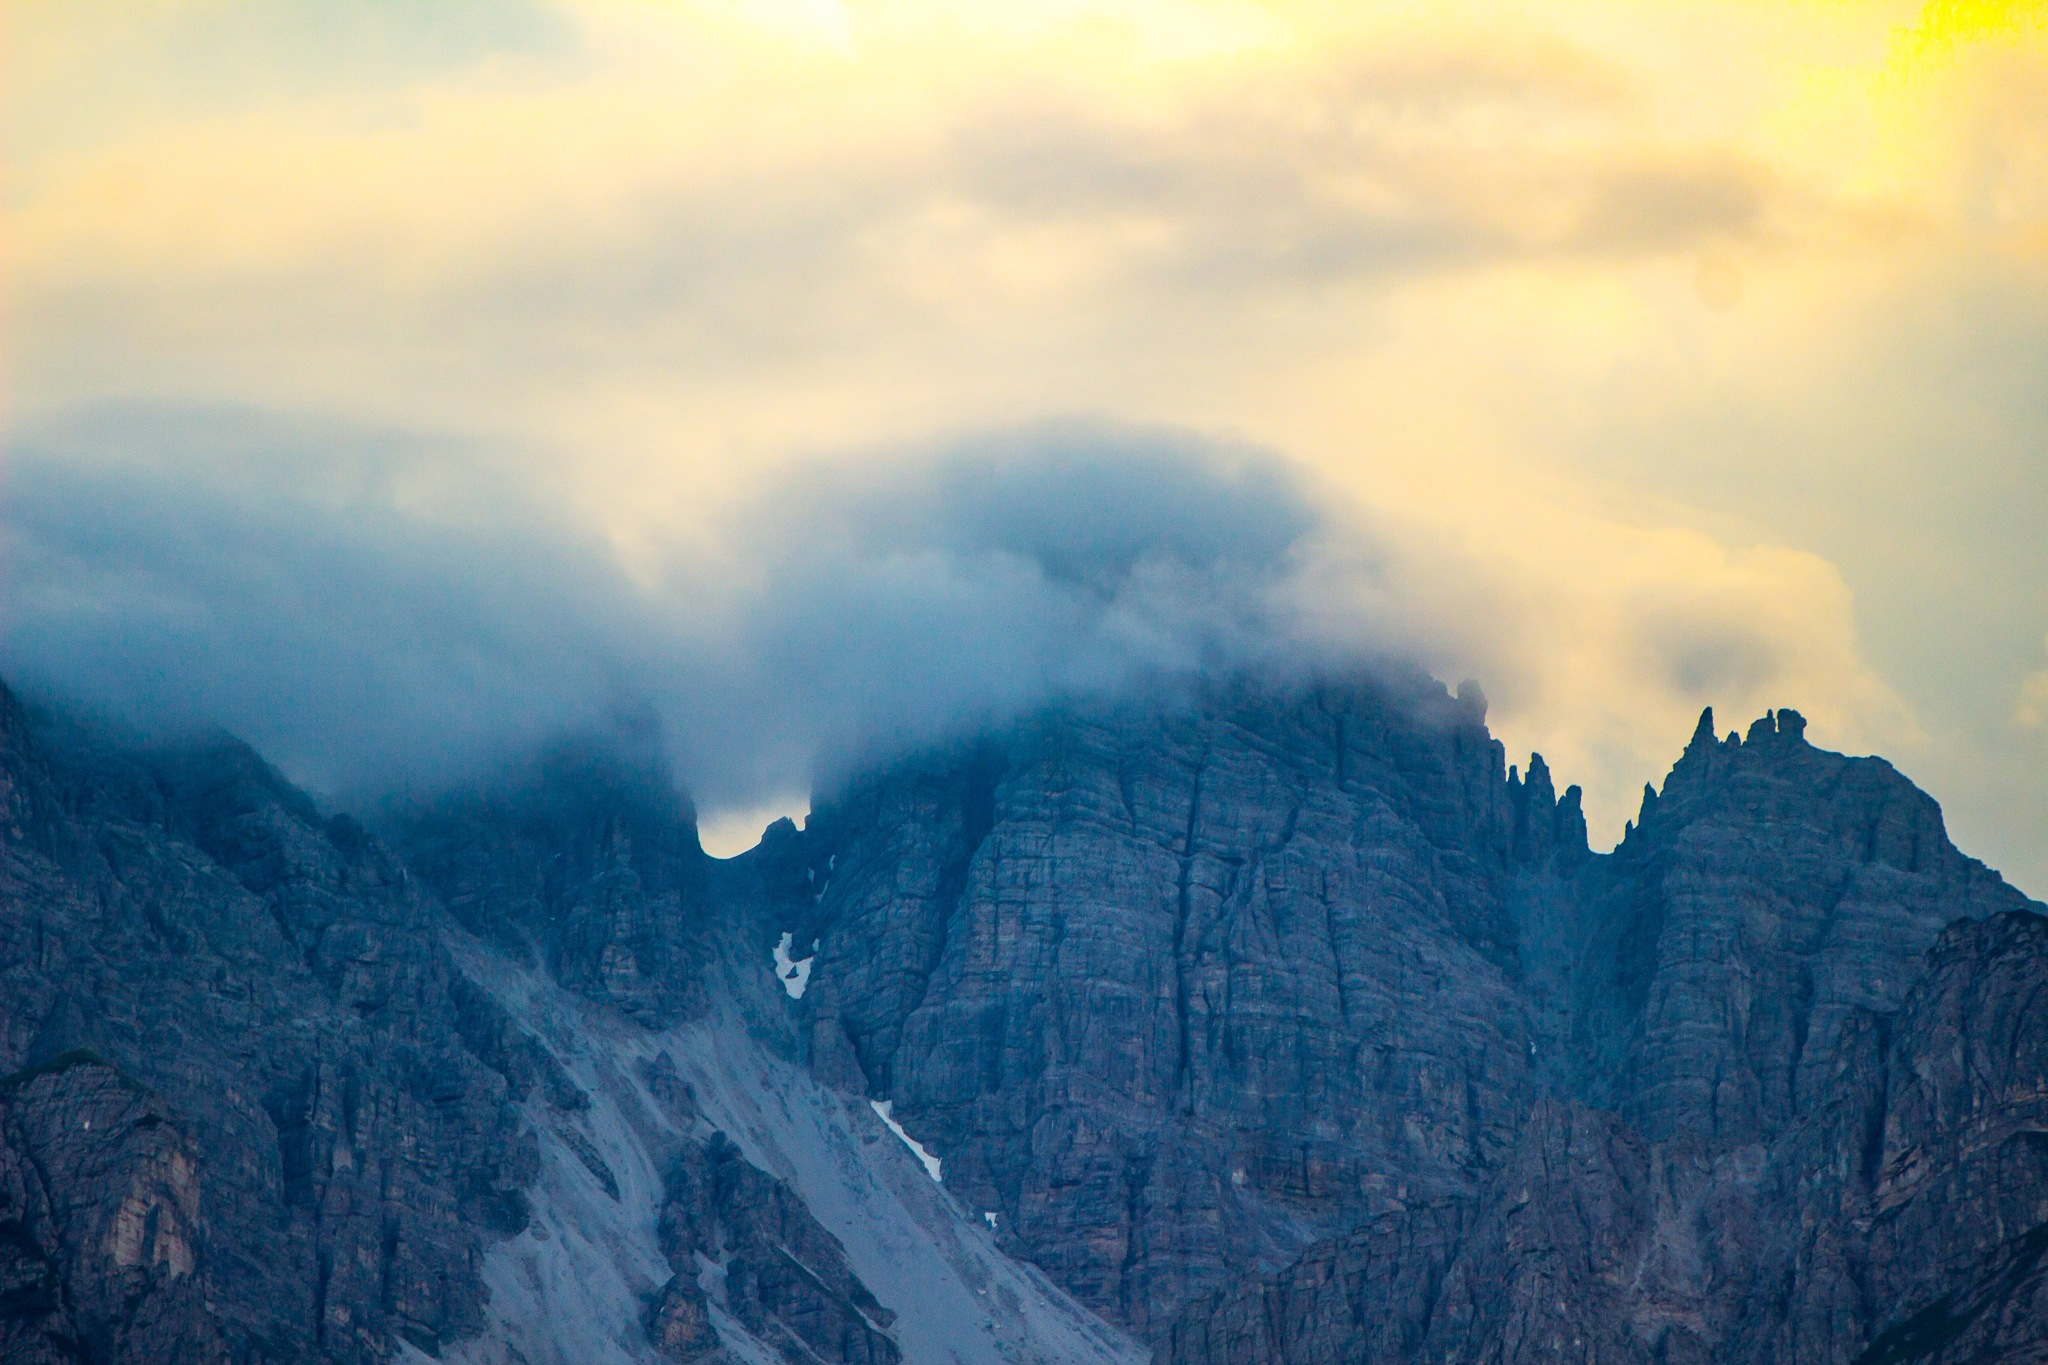 alps in clouds by Alexander Magerl